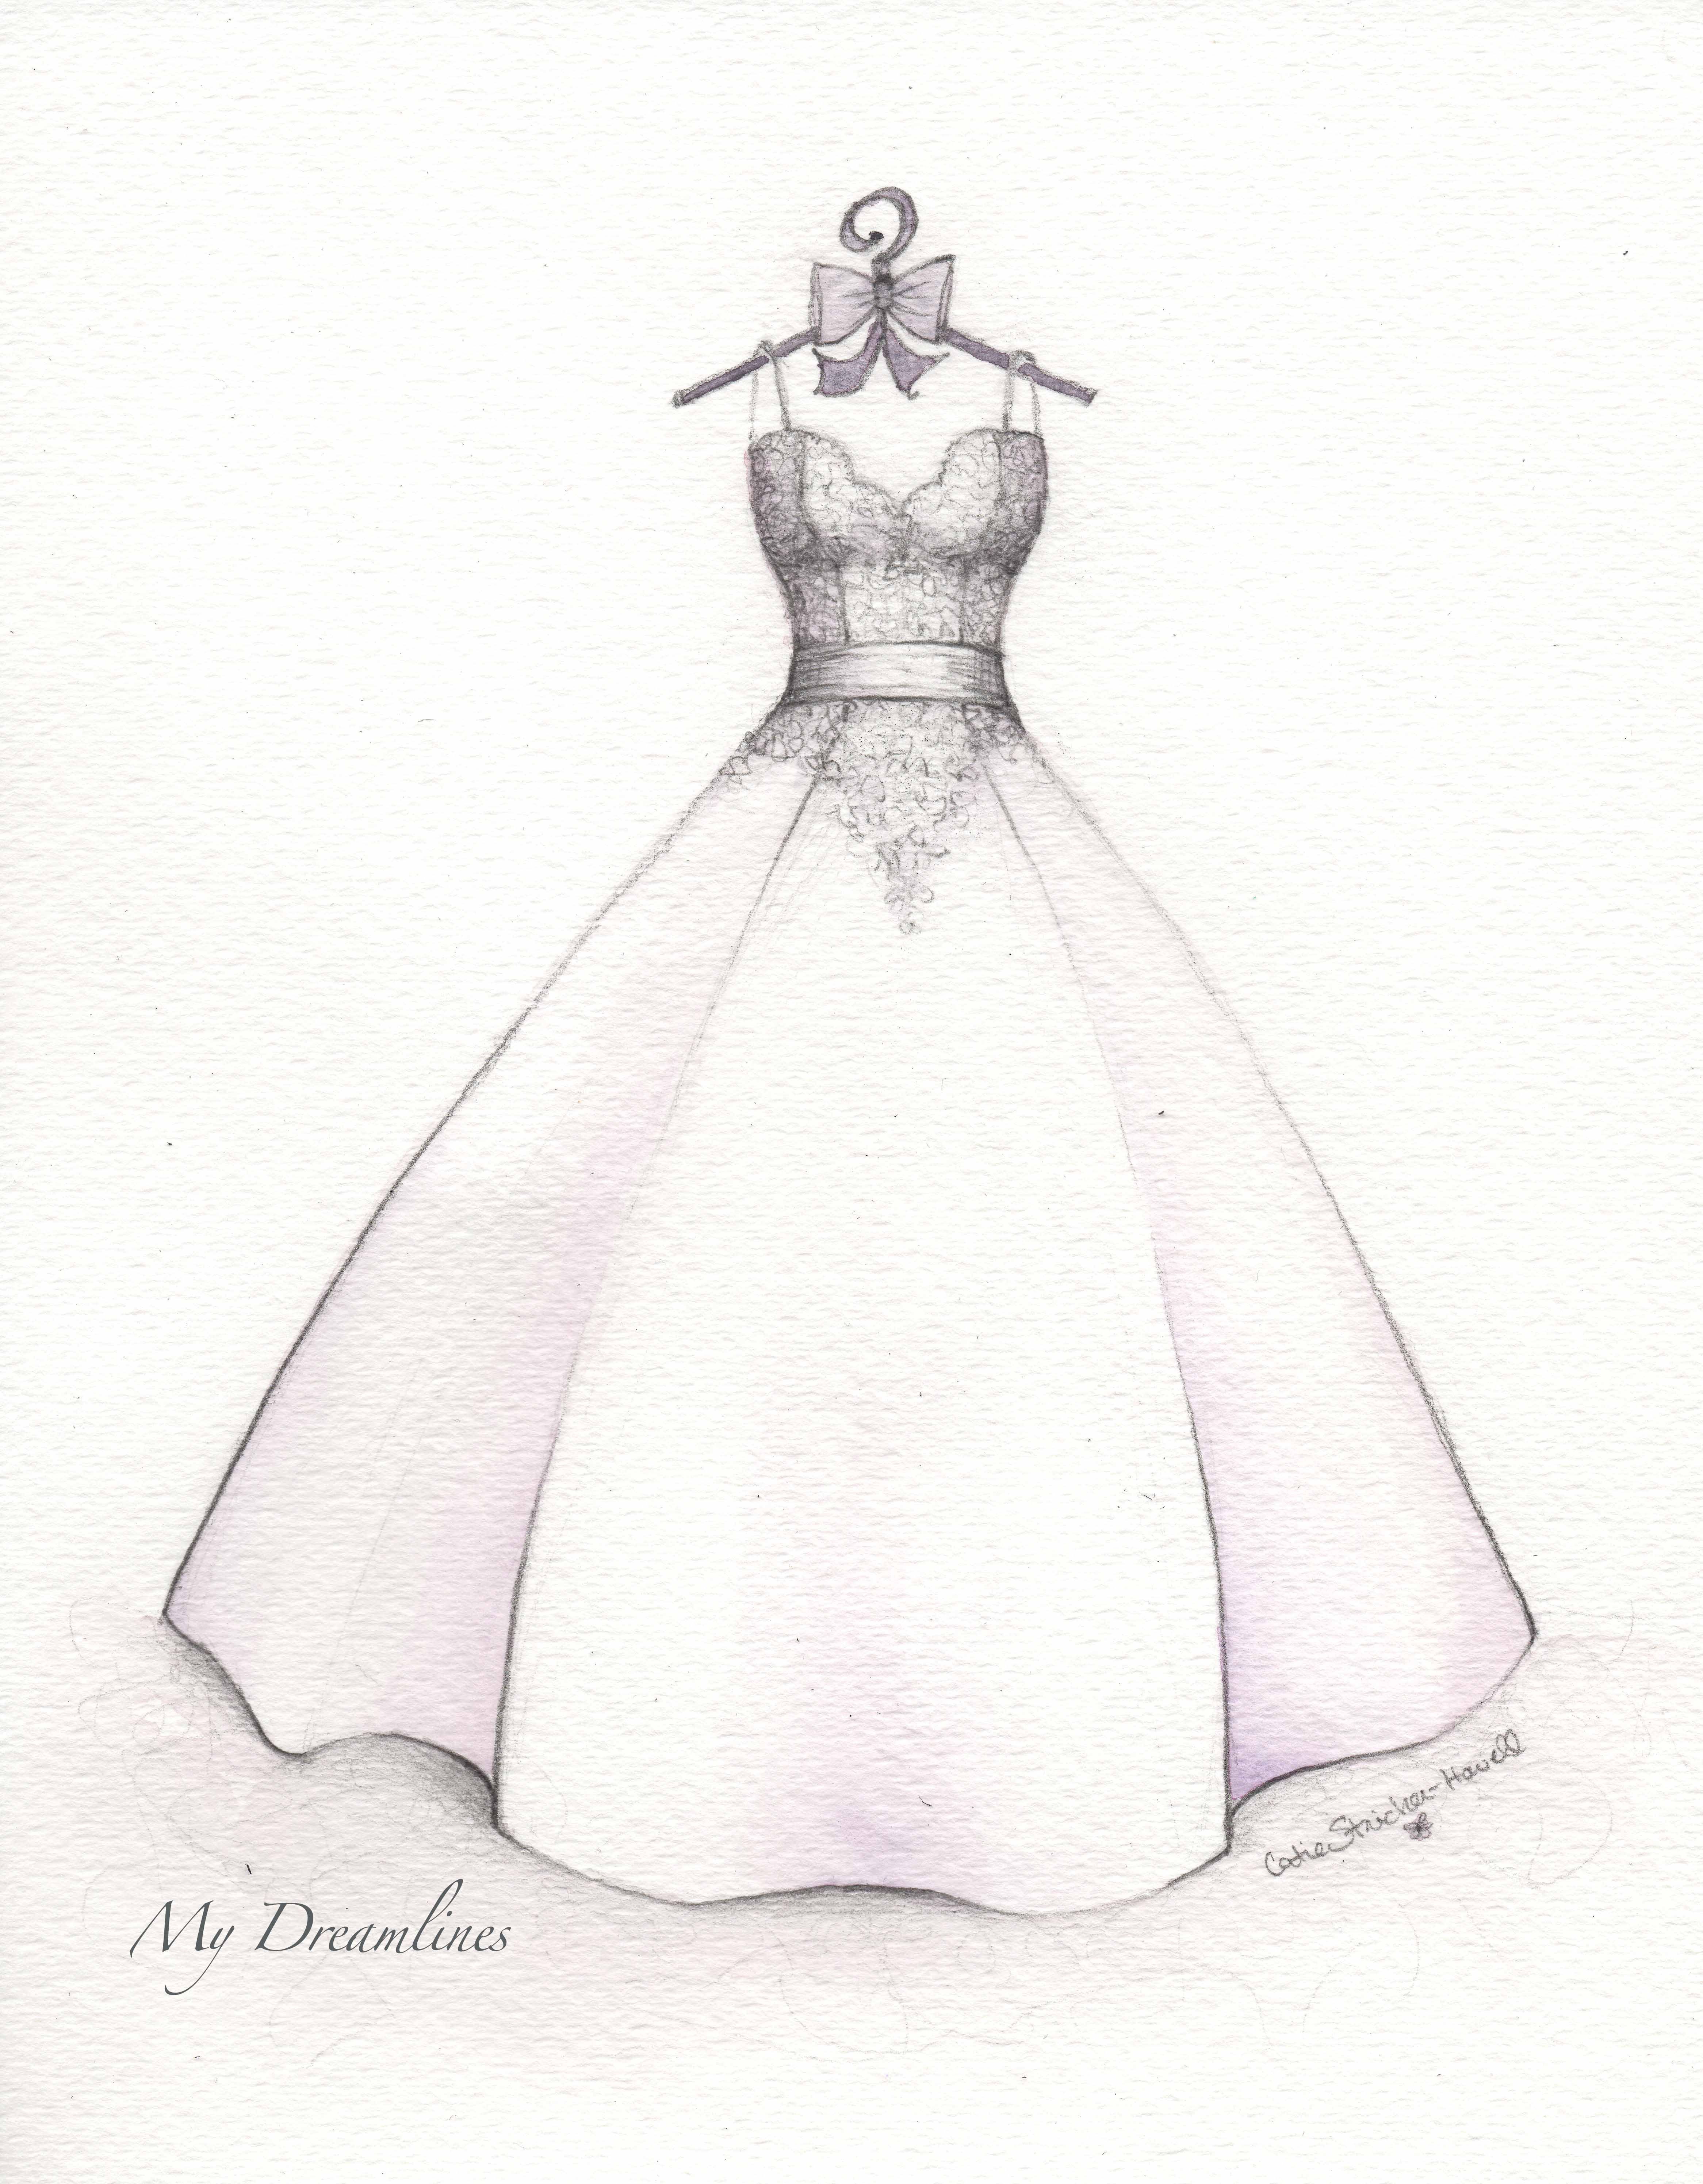 First Anniversary Sketch Gift From The Husband To His Wife By Catie Strickerhowell Catiethesketchlady: Fashion Sketches Italian Wedding Dresses At Websimilar.org